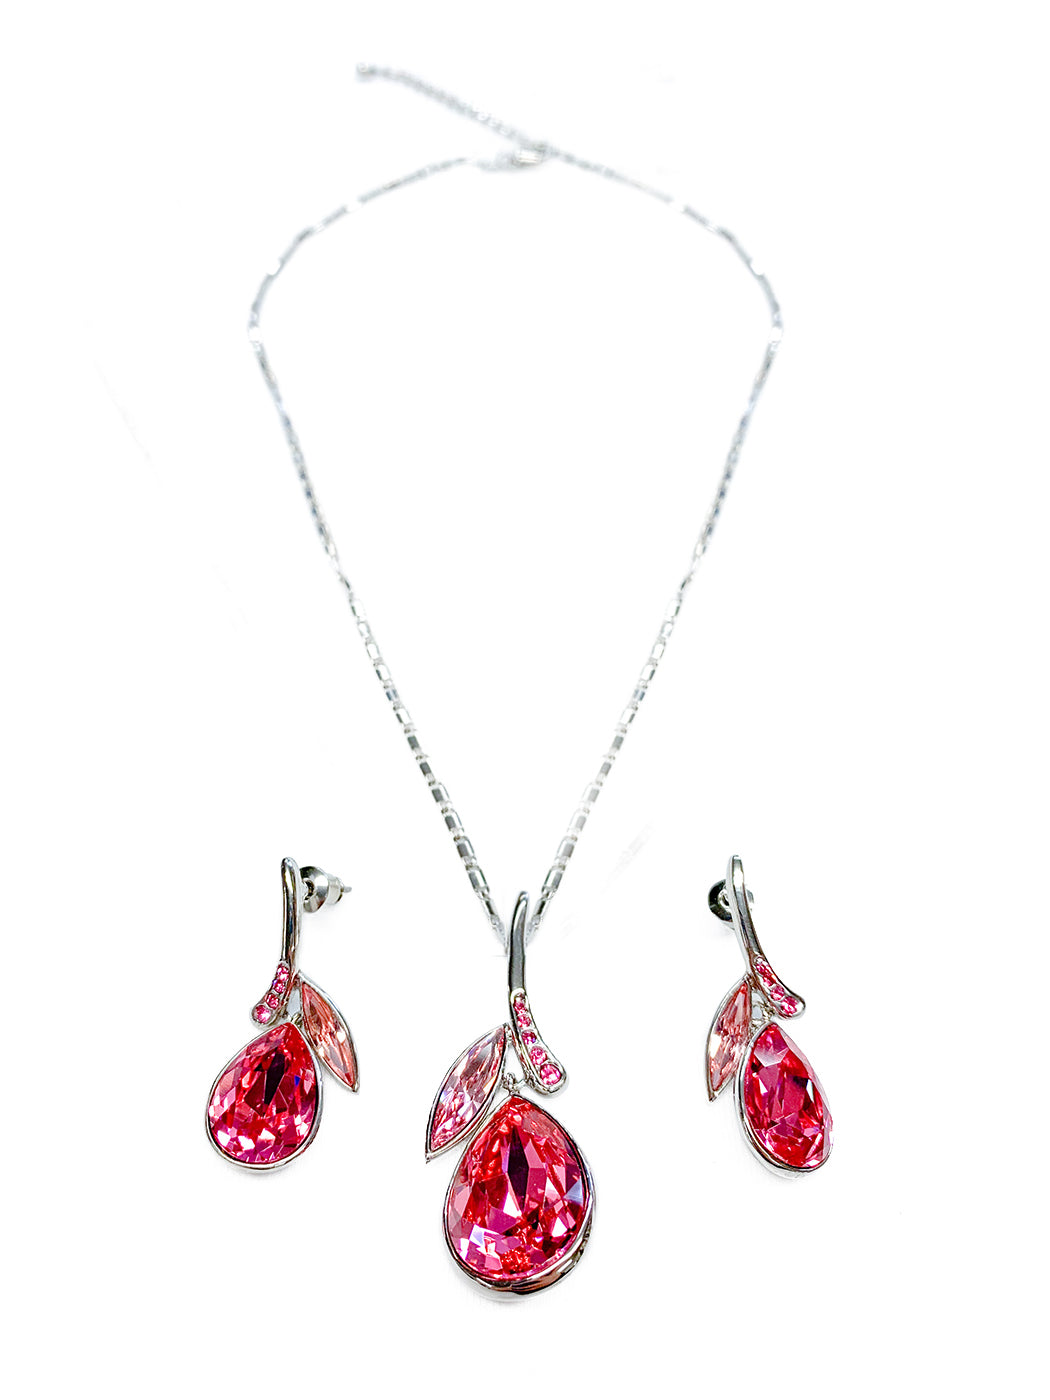 Swarovski Crystals Pendant Necklace Earrings Set